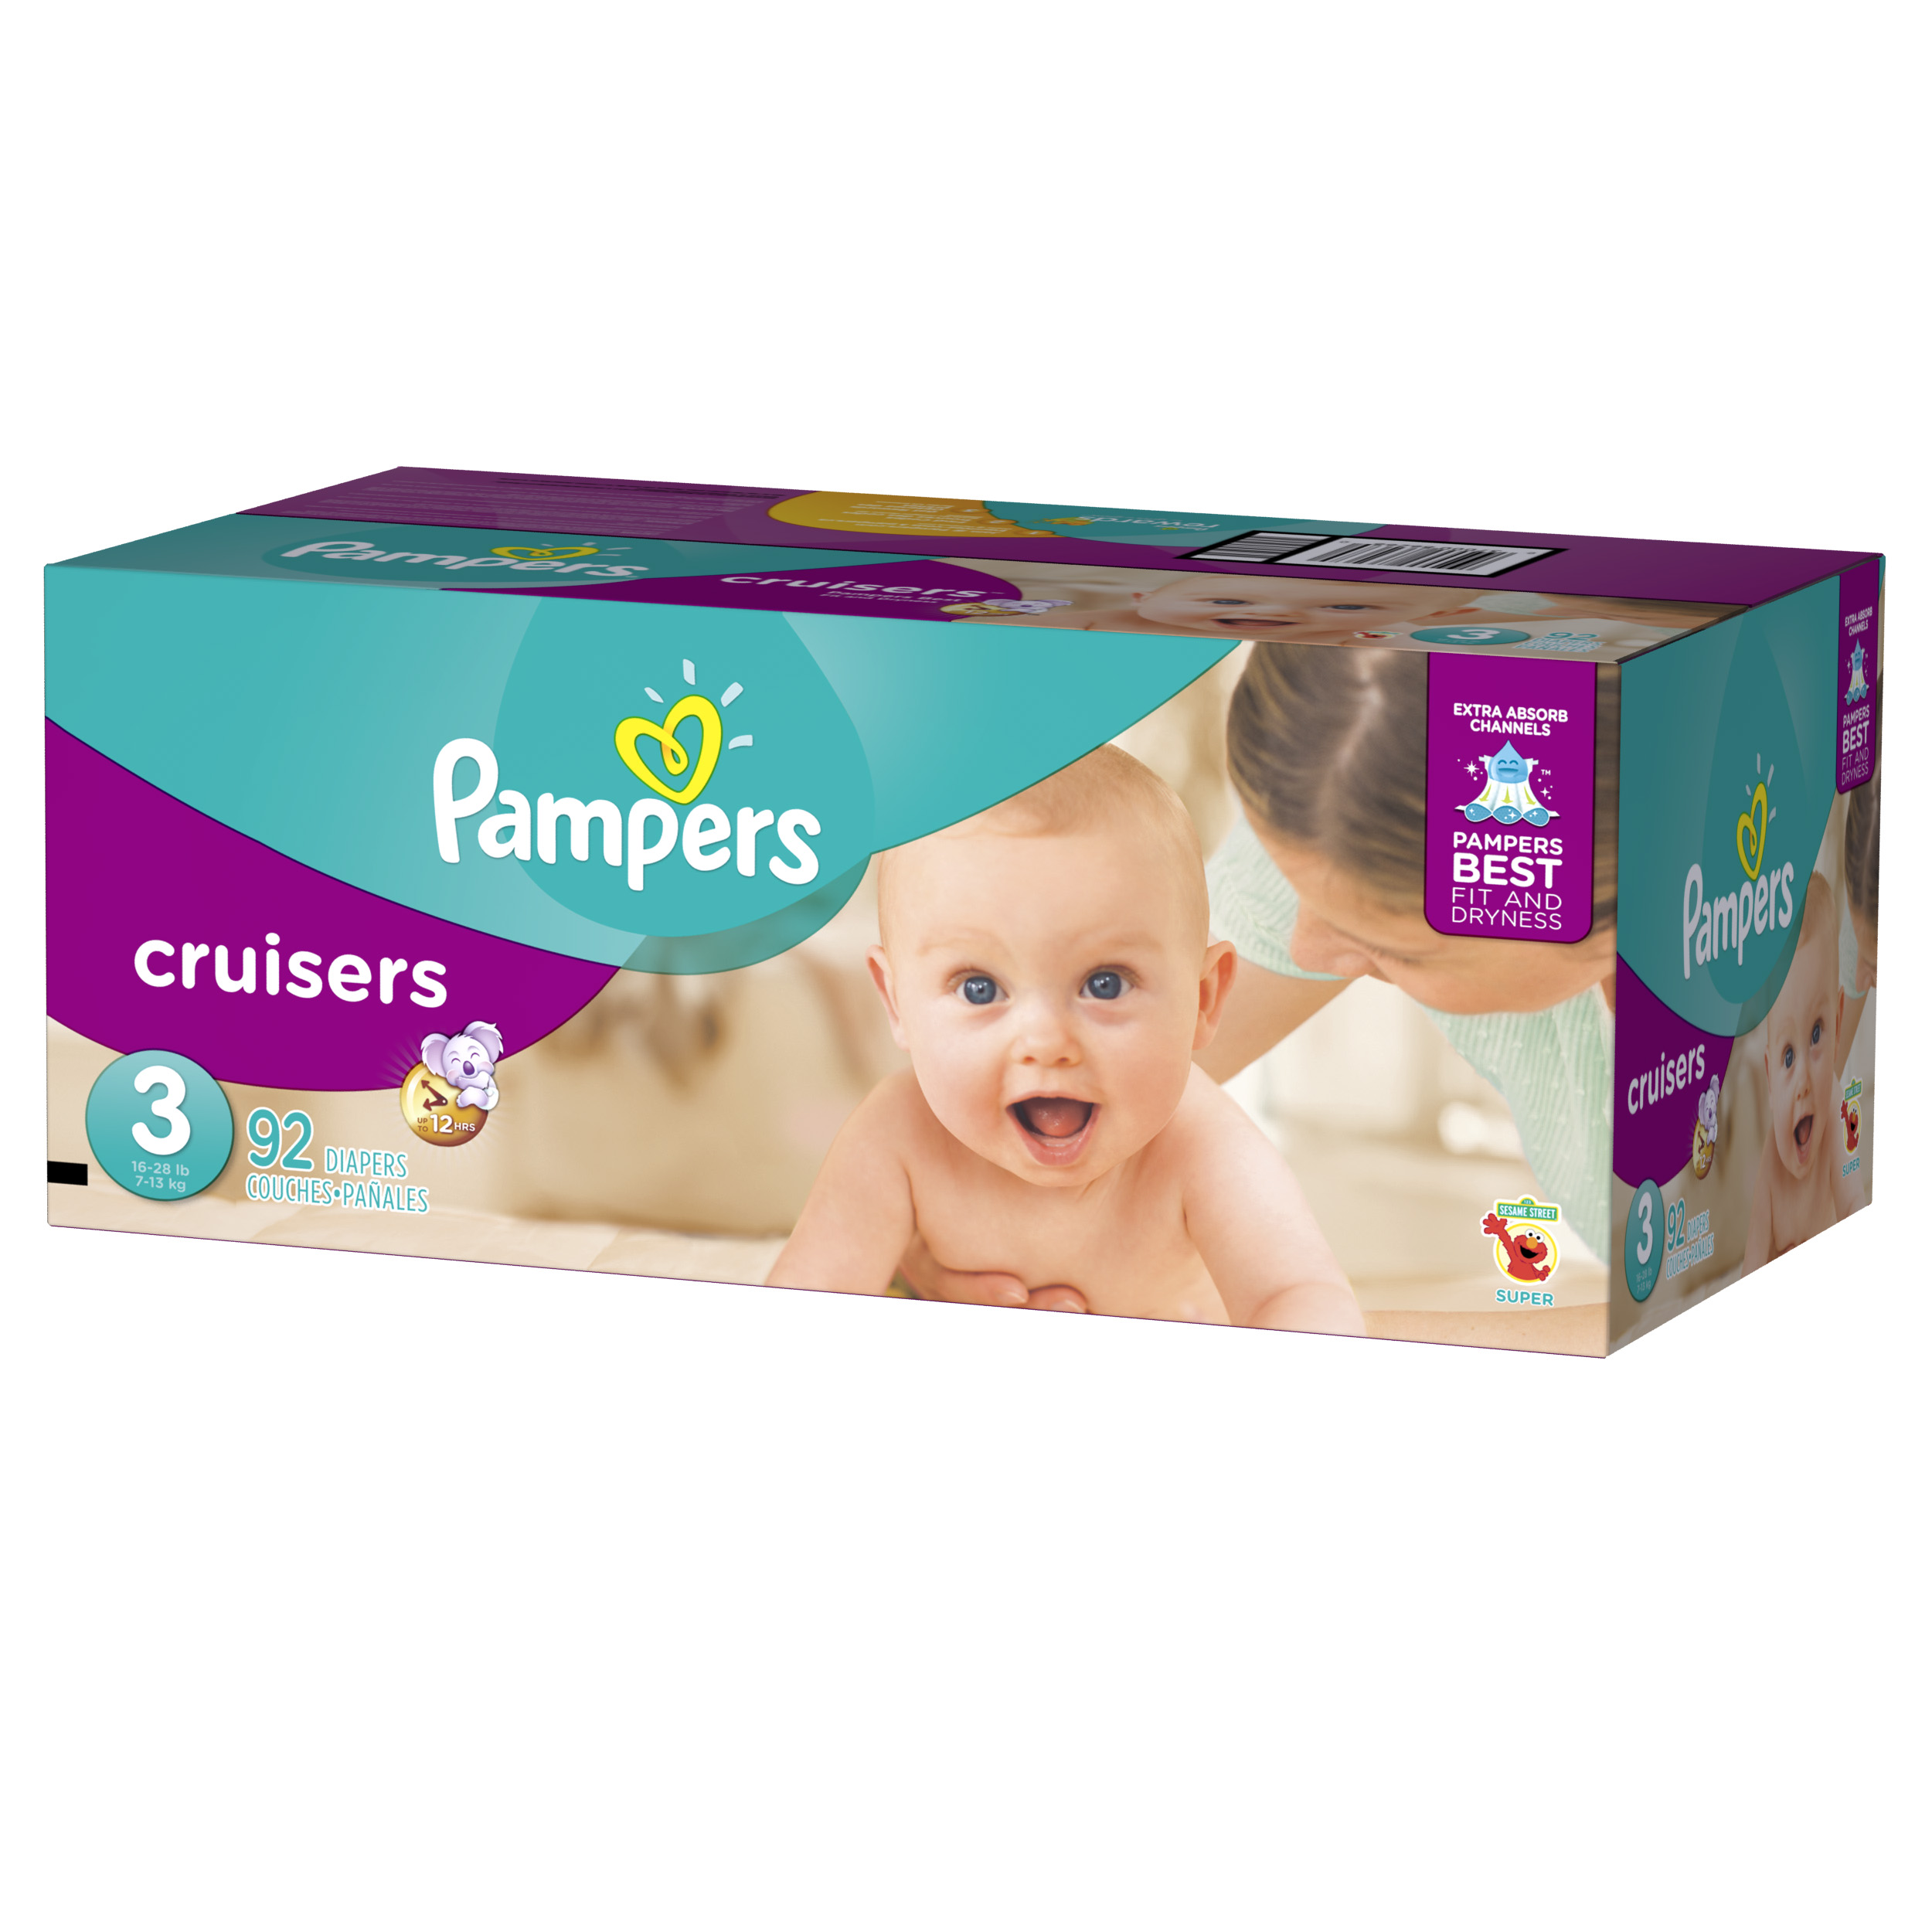 Pampers Cruisers Diapers Size 3 92 count